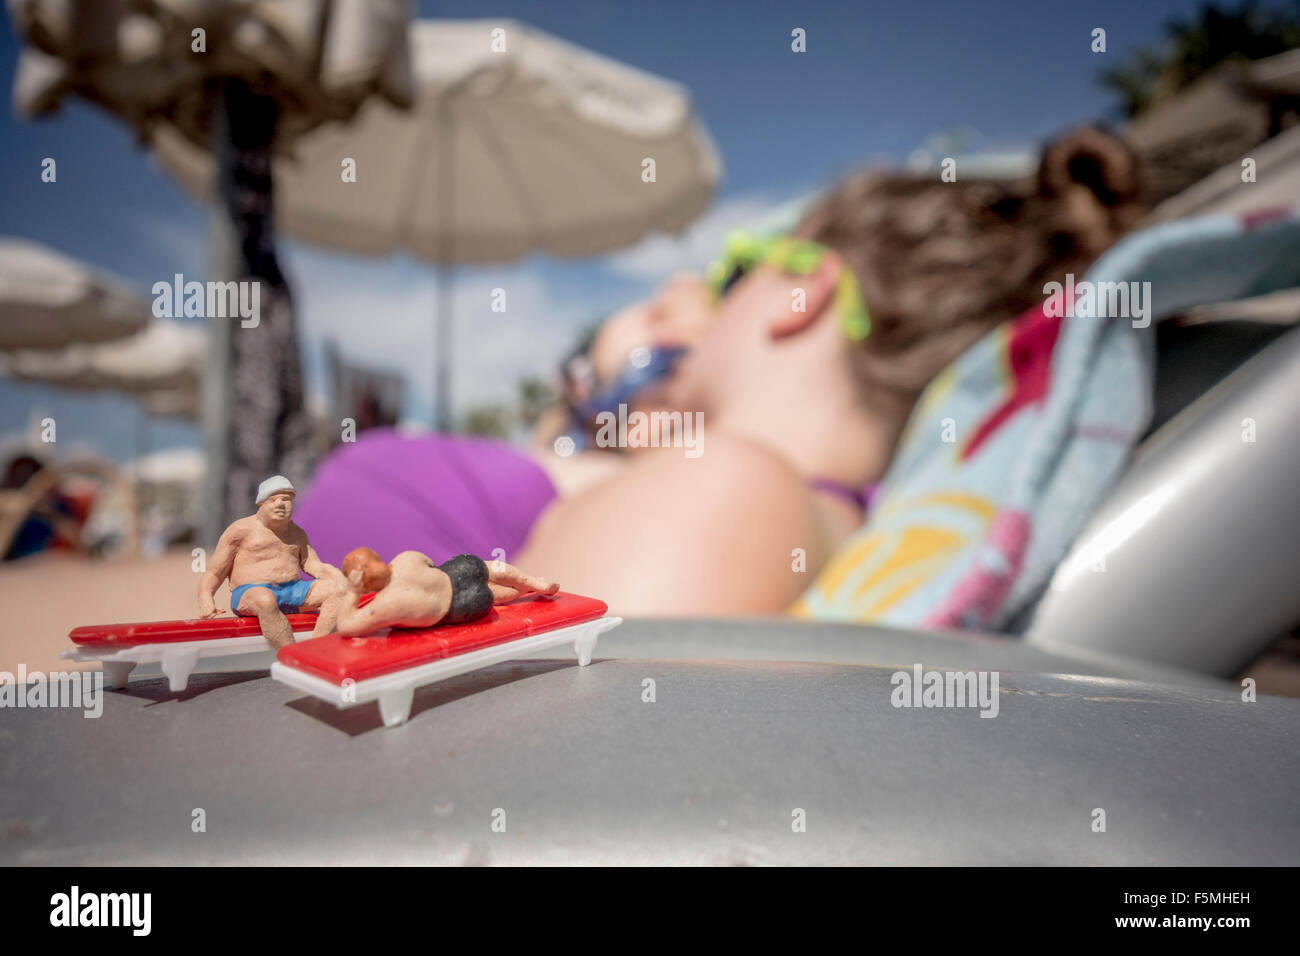 Two figurines on sun loungers at the beach - Stock Image